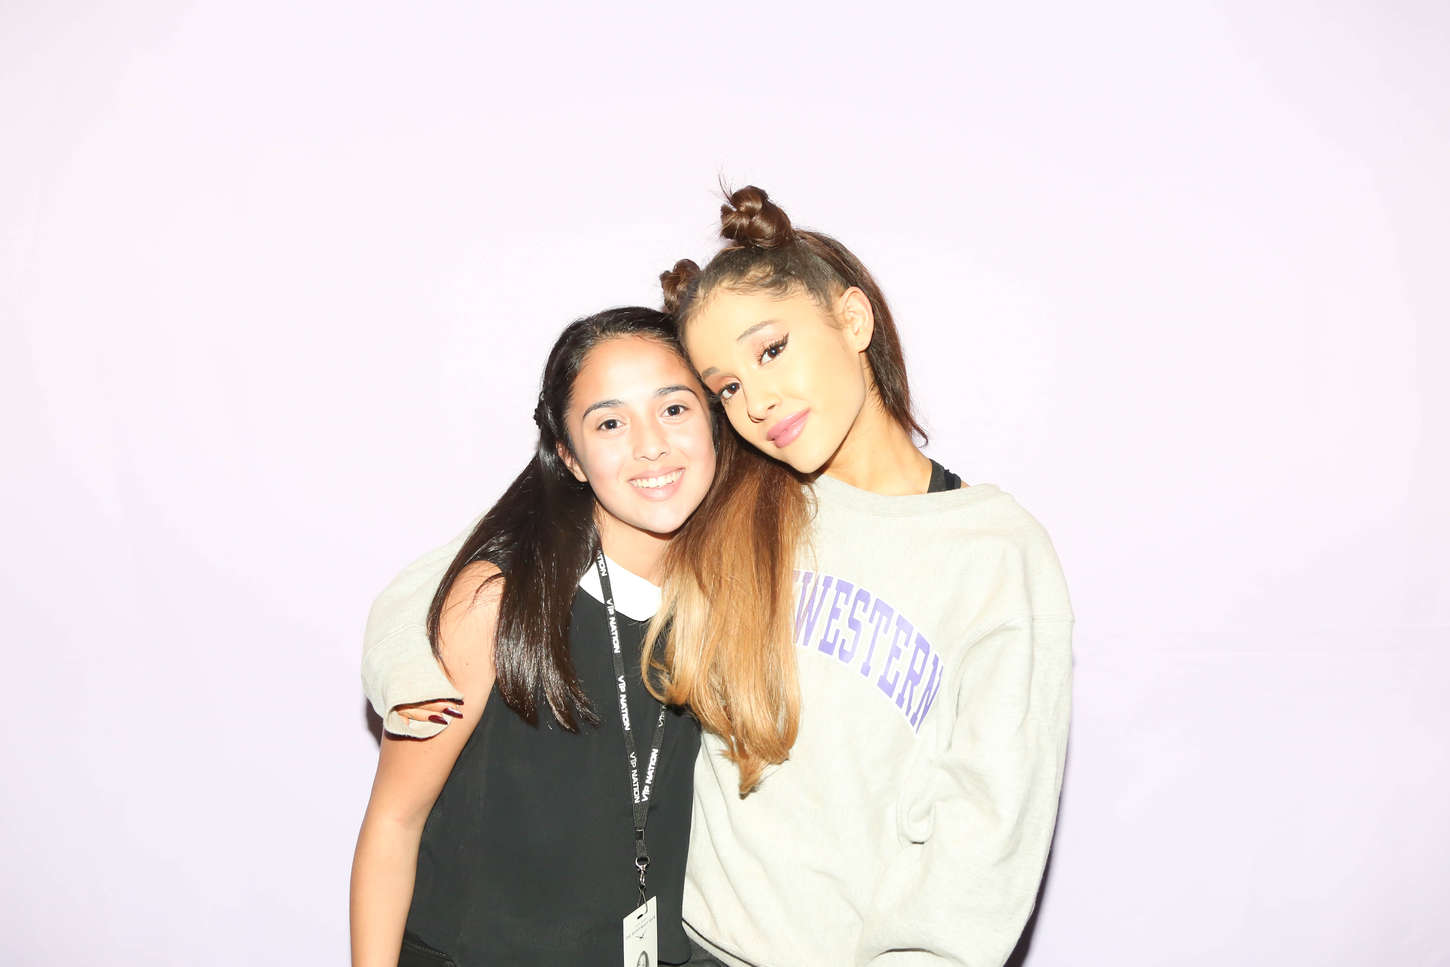 Ariana Grande Meet And Greet Experience Gallery Greetings Card